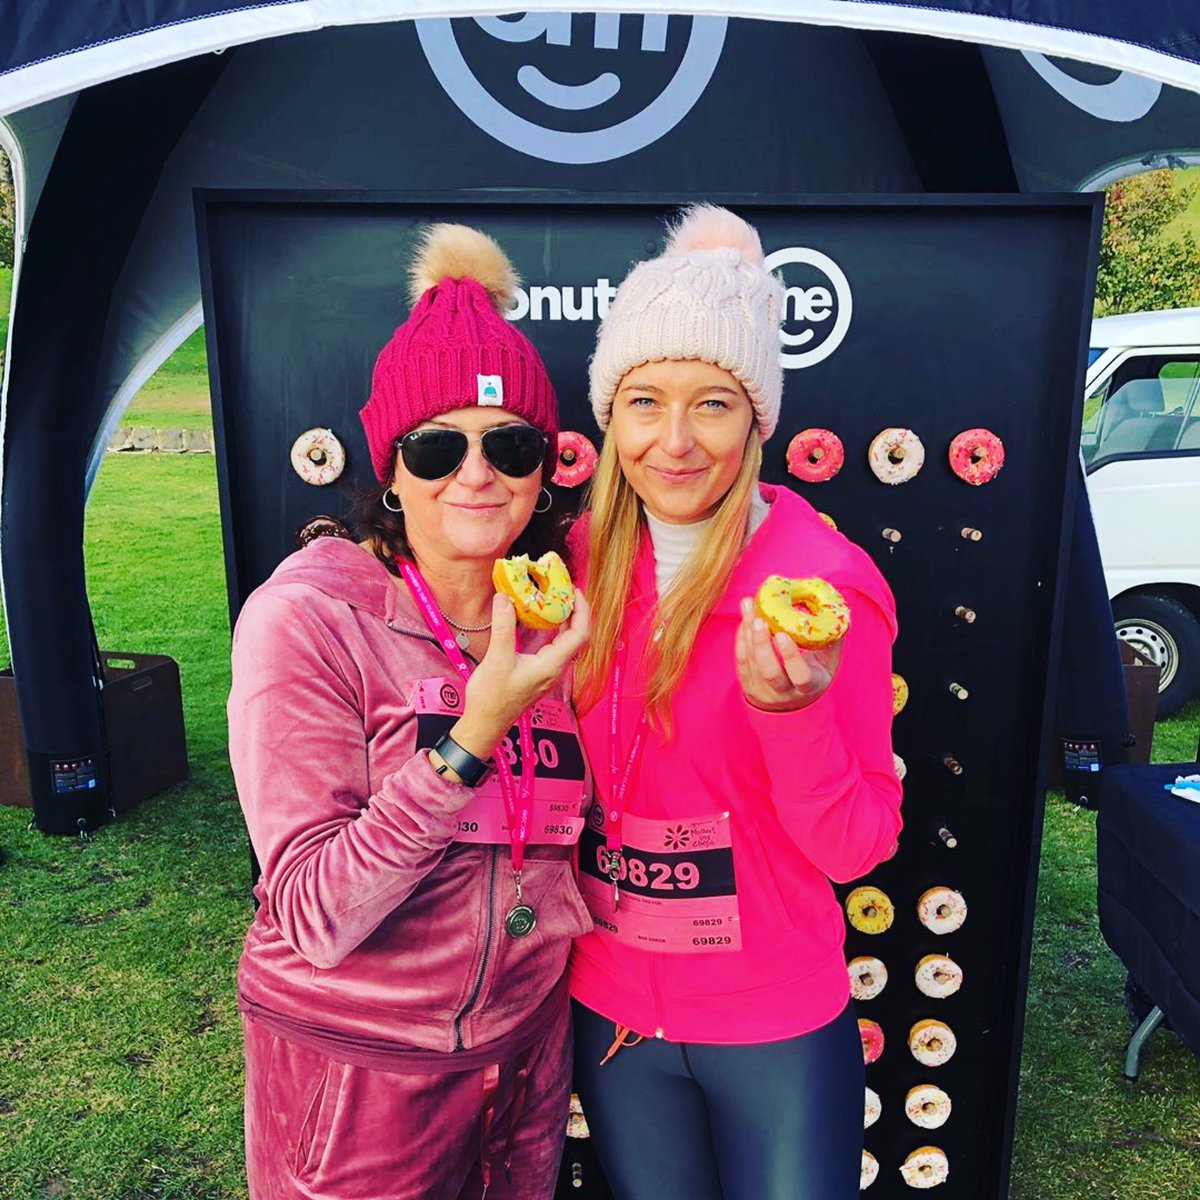 Now we're seriously craving Friday donuts. Anyone else?  Thanks for the memories @MDC_walk_run    #MDC2019 <br>http://pic.twitter.com/ONLOUsXr3h